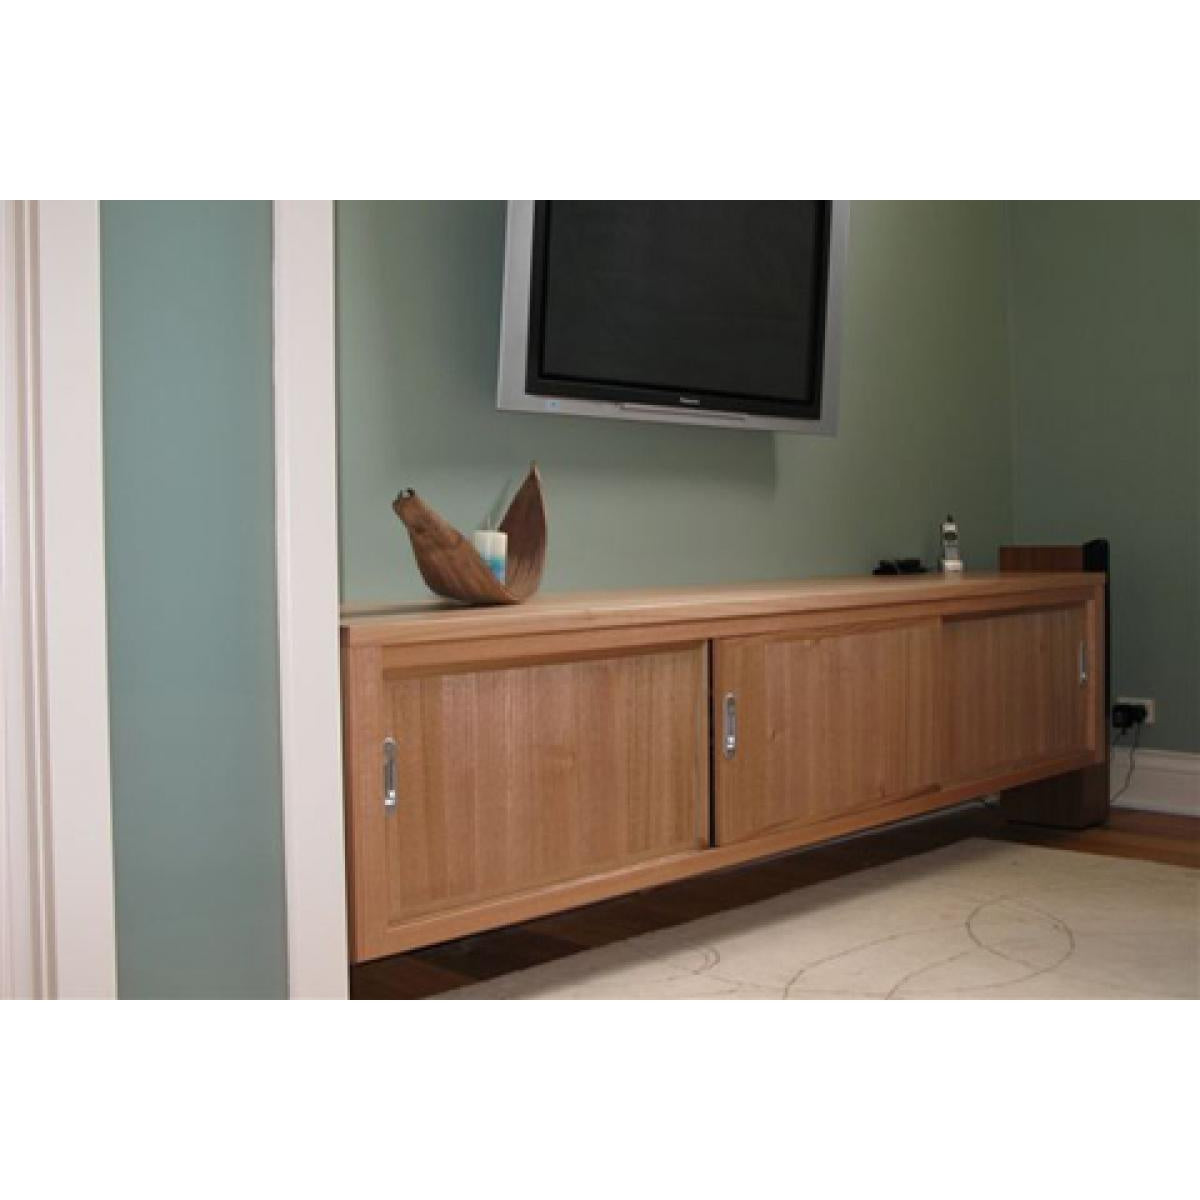 Custom design Tasmanian oak wall hung sliding door entertainment unit-tv unit-Wildwood Designs Furniture